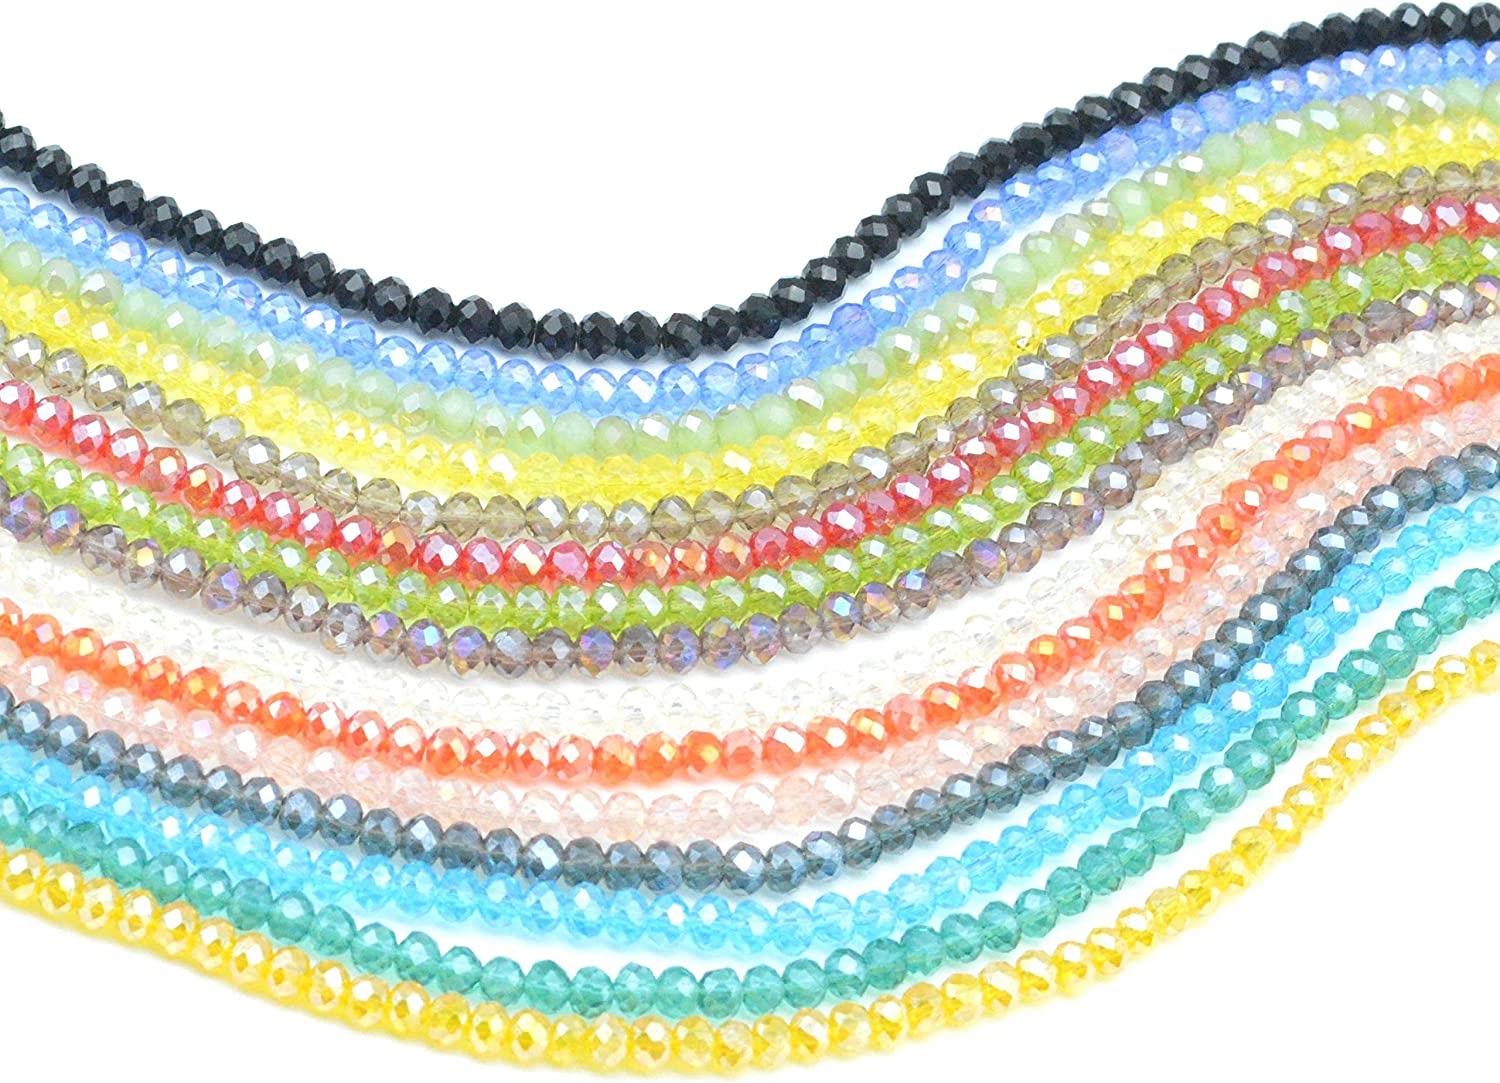 40 Glass Crystal BLUES MIX Faceted Briolette 12x6mm Teardrop Beads